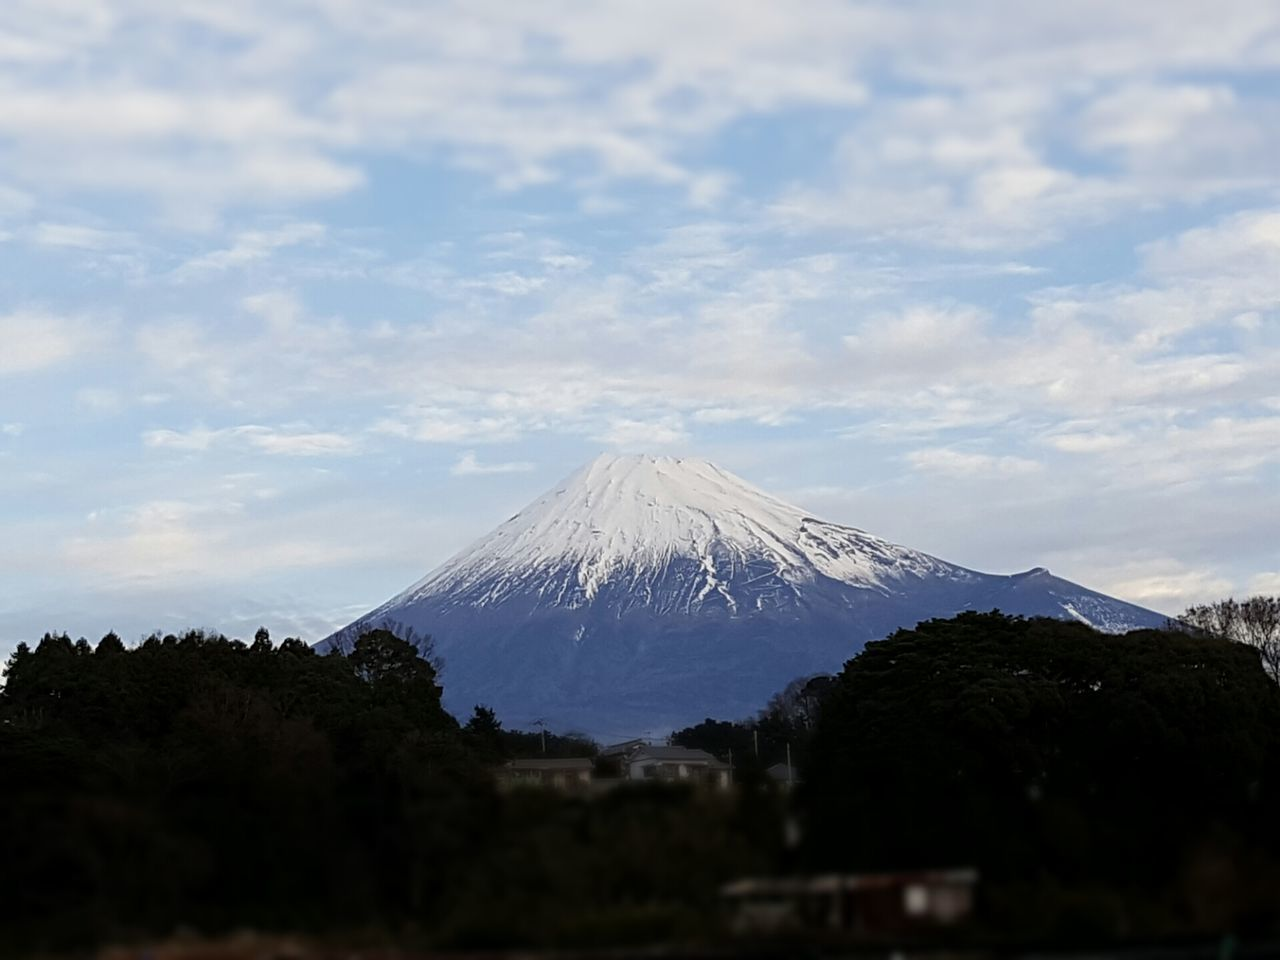 mountain, beauty in nature, cloud - sky, sky, scenics, volcano, nature, outdoors, tranquility, tranquil scene, volcanic landscape, landscape, no people, peak, day, tree